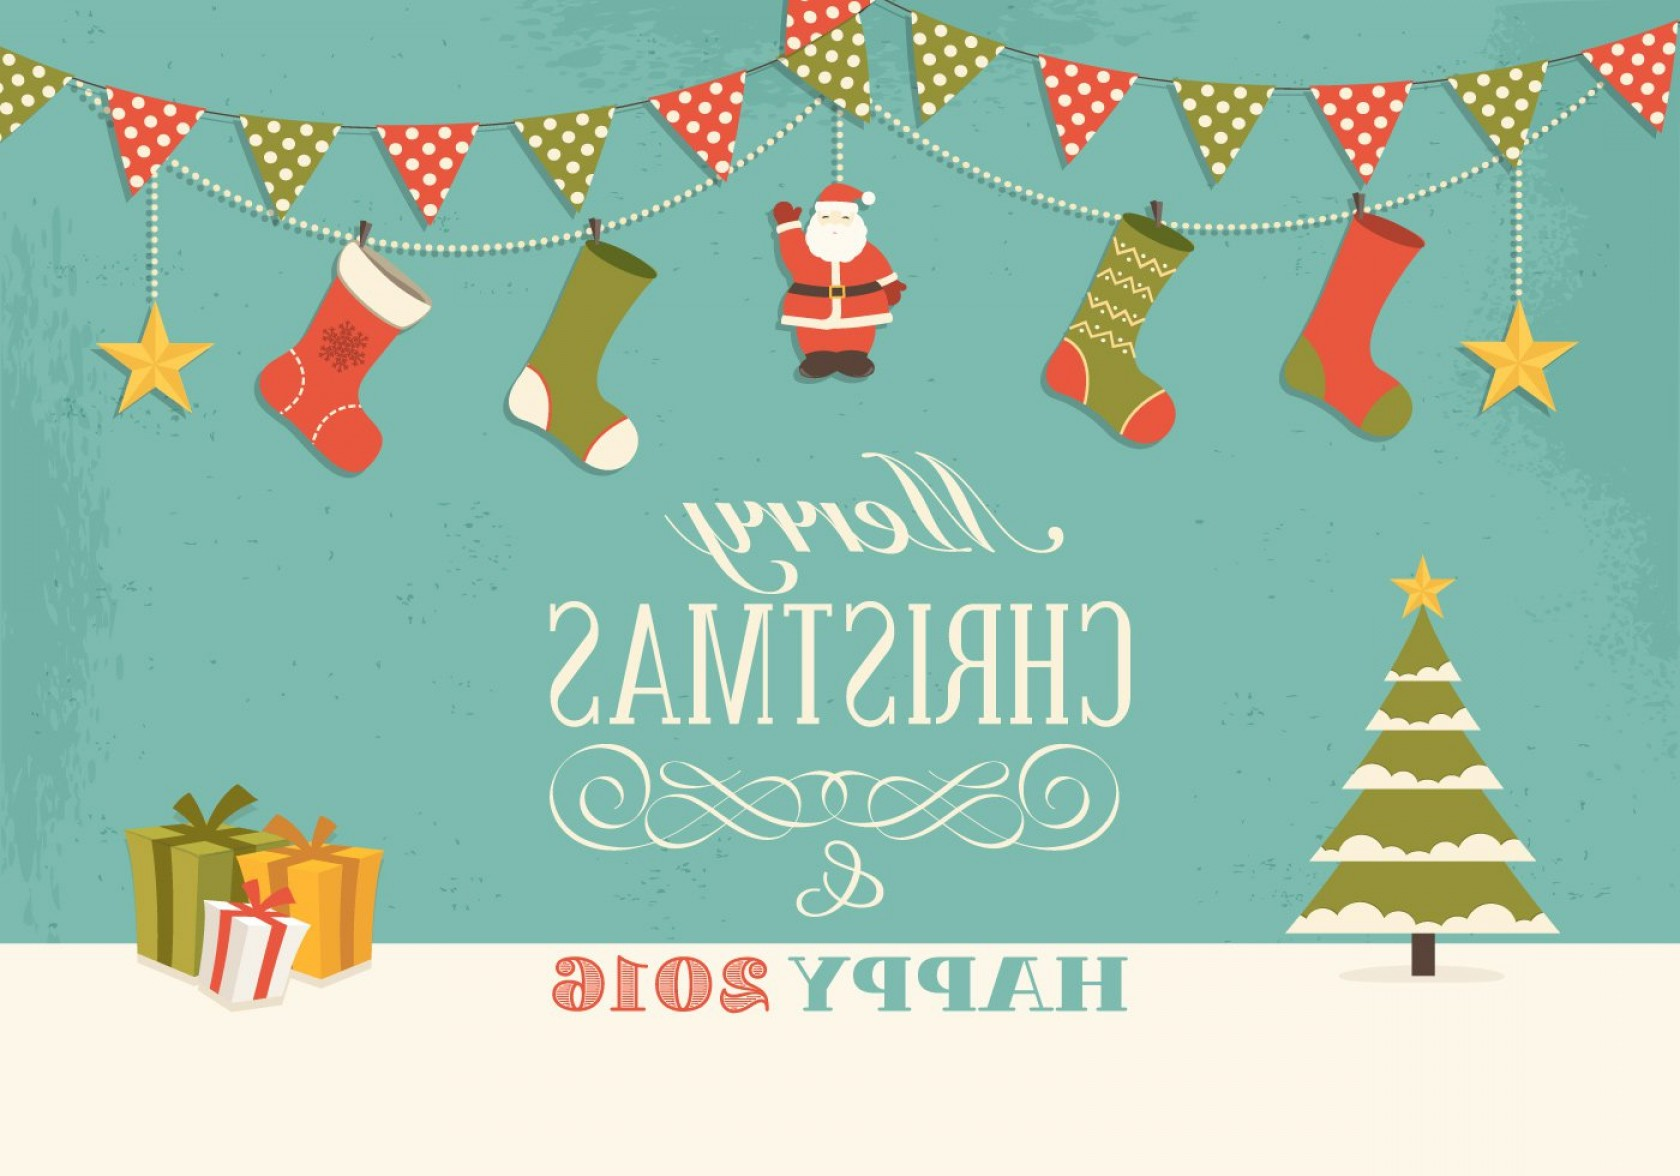 Merry Christmas Vector Graphic: Xmas Freebies Best Hi Quality Christmas Graphic Vectors